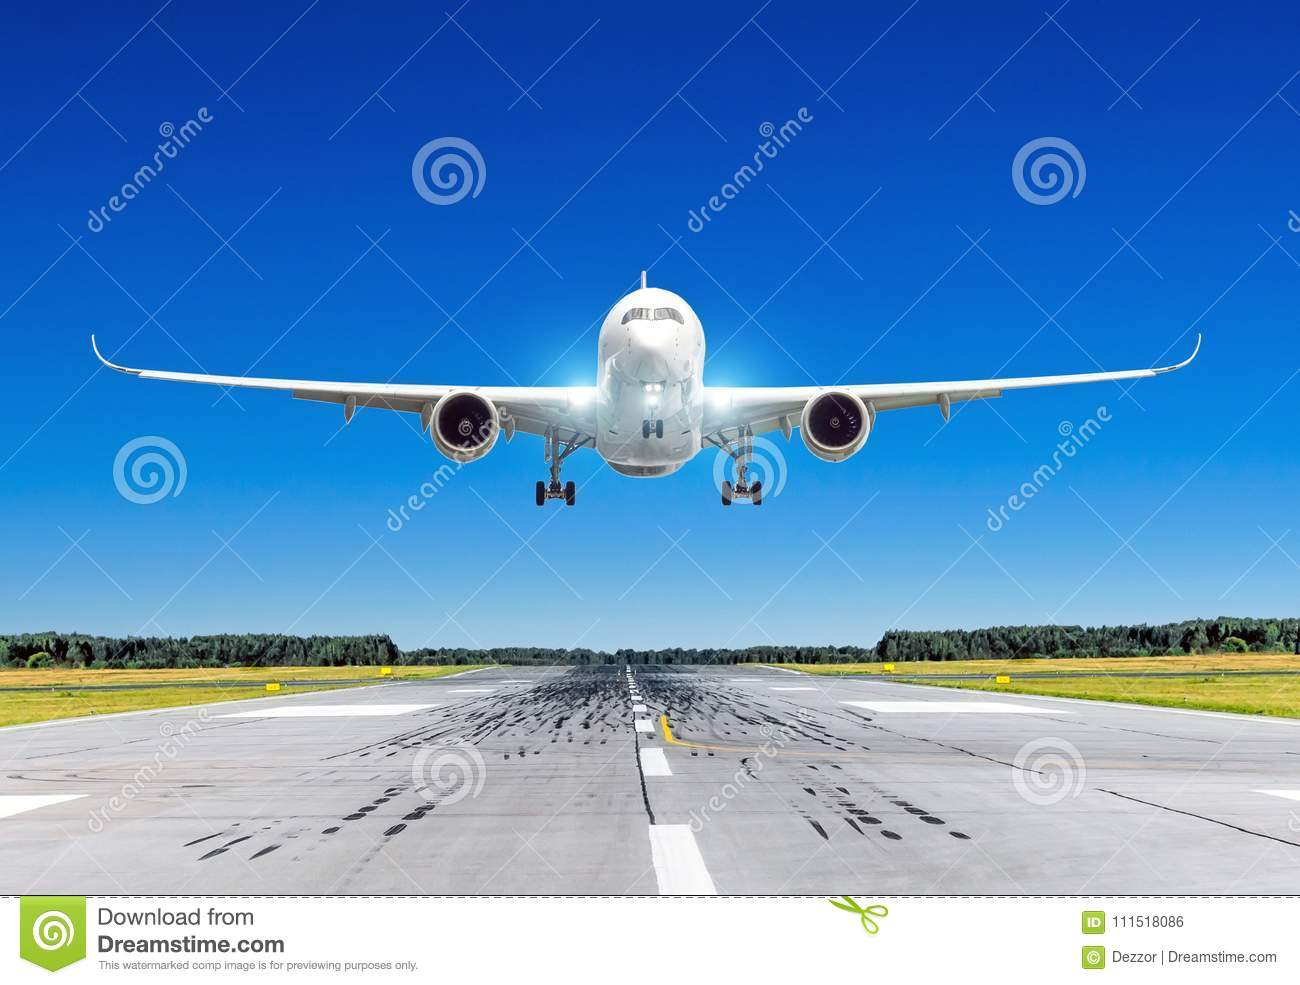 Passenger airplane with bright landing lights landing at in good clear weather with a blue sky on a runway.